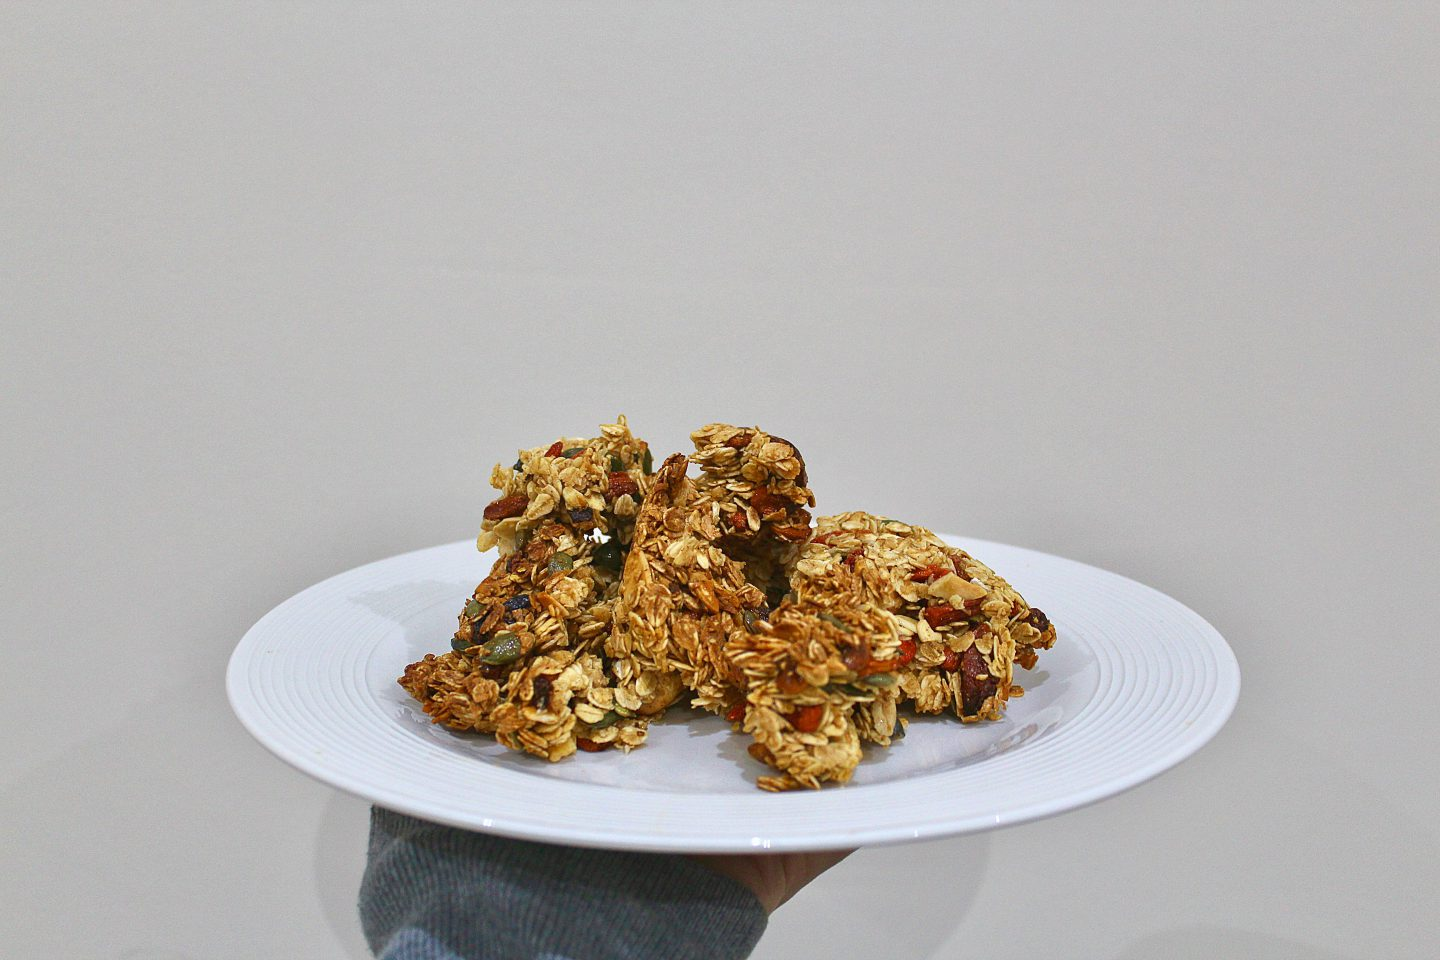 Superfood Goji Berry and Cashew Nut Flapjack Bites